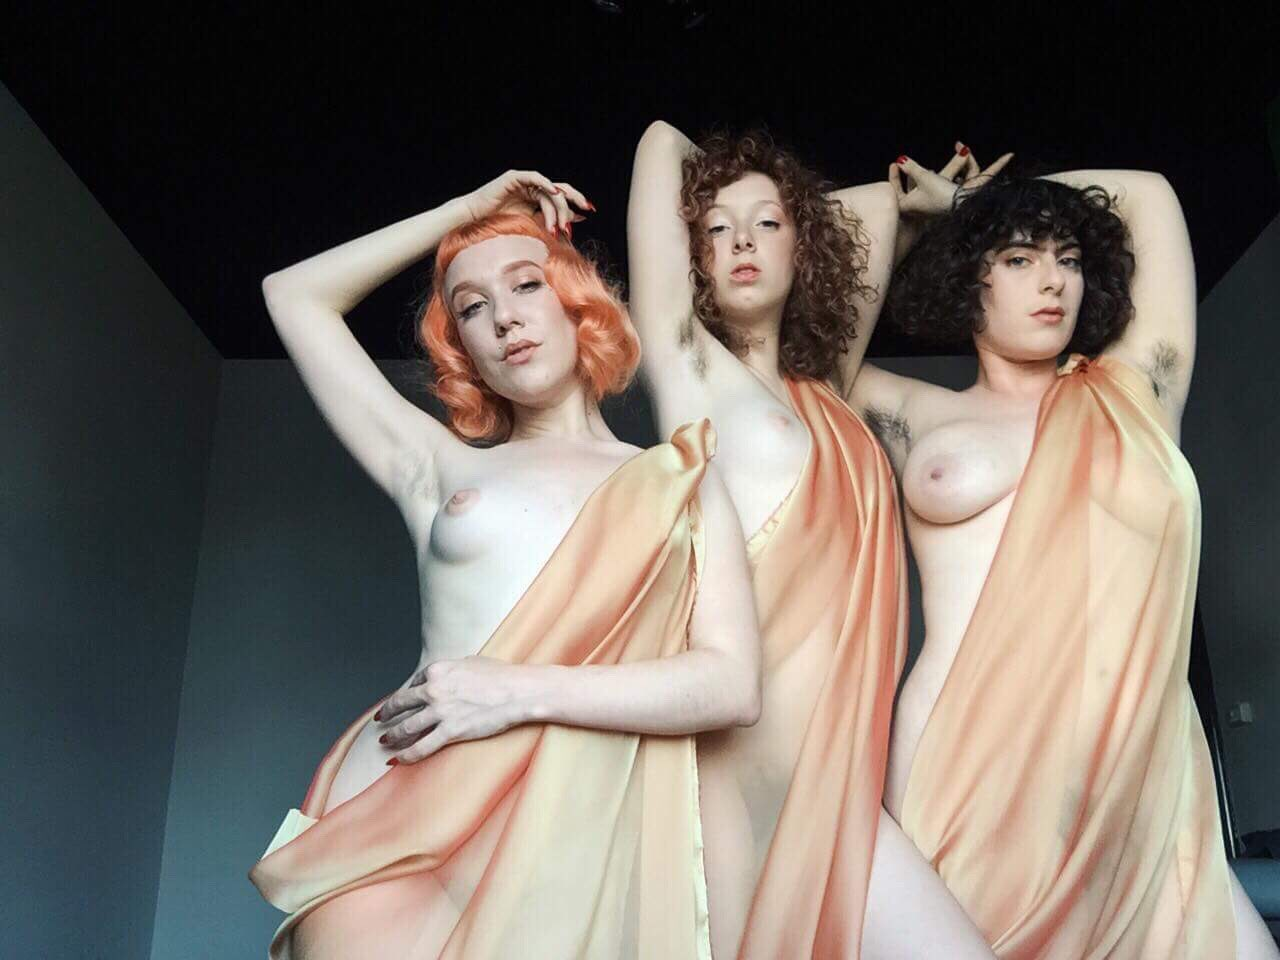 Three graces performing at Passionfruit for my quršu ritual.